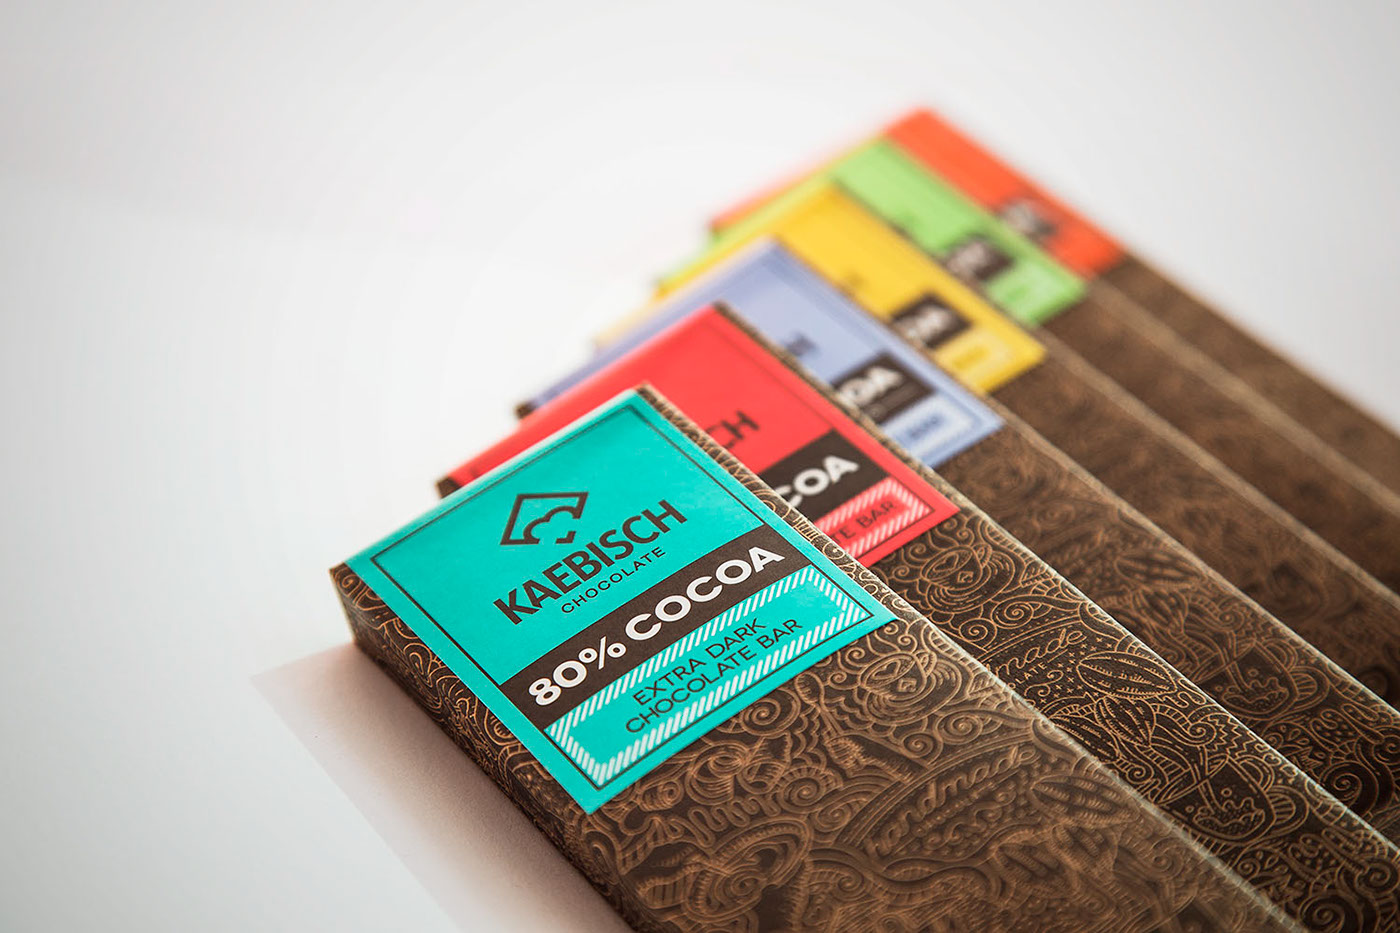 kaebisch-chocolate-packaging-mauro-martins-04